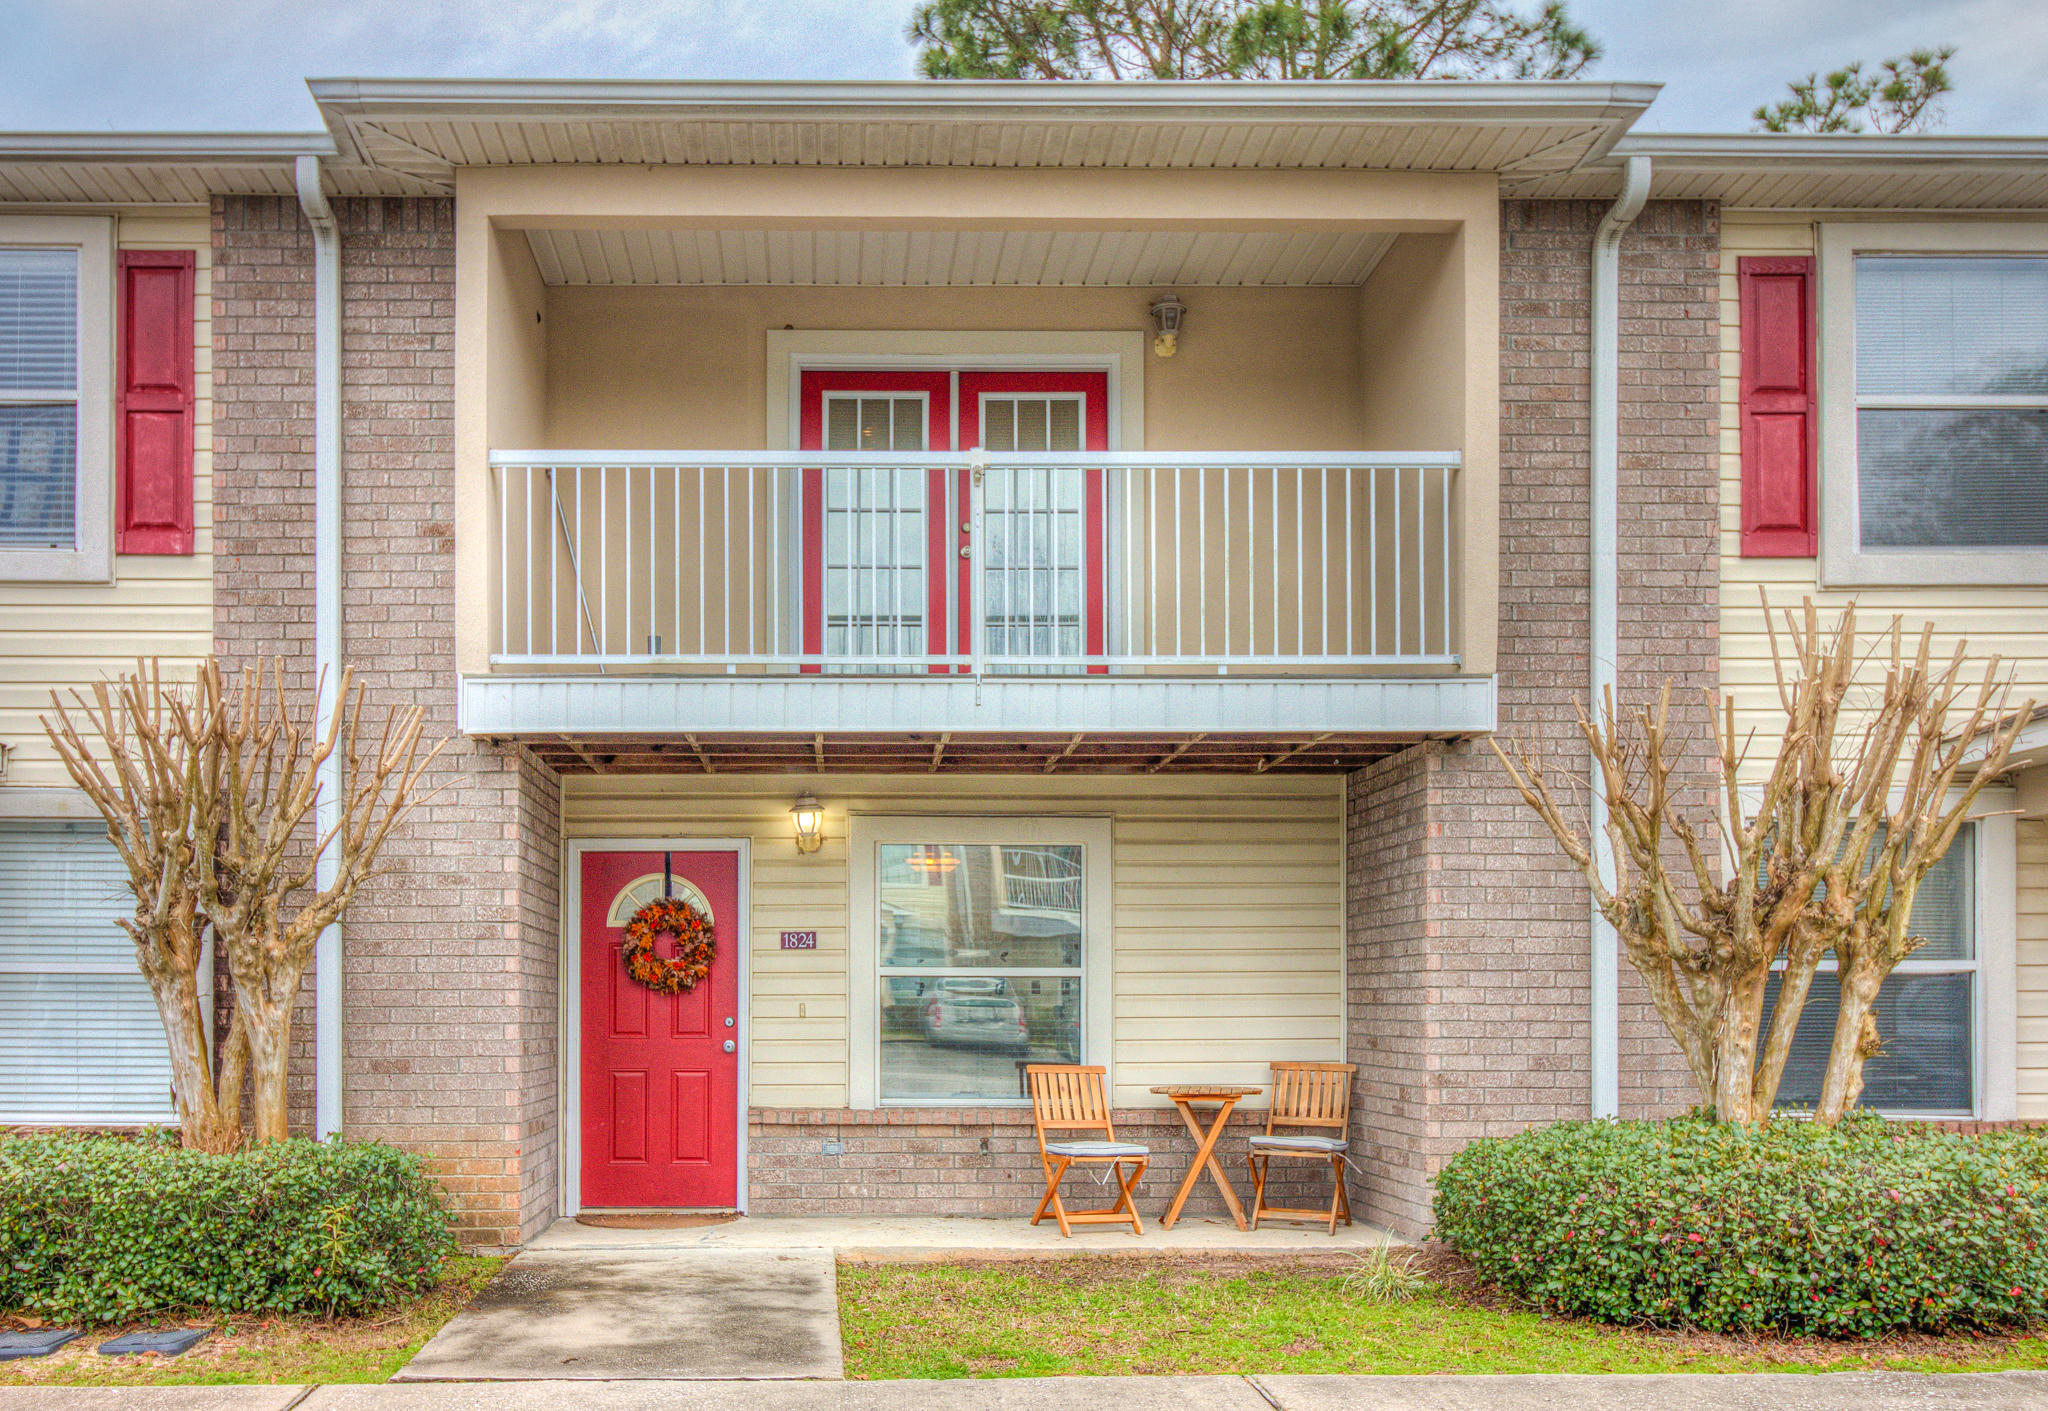 A 2 Bedroom 1 Bedroom Shay Lin T/h Townhome